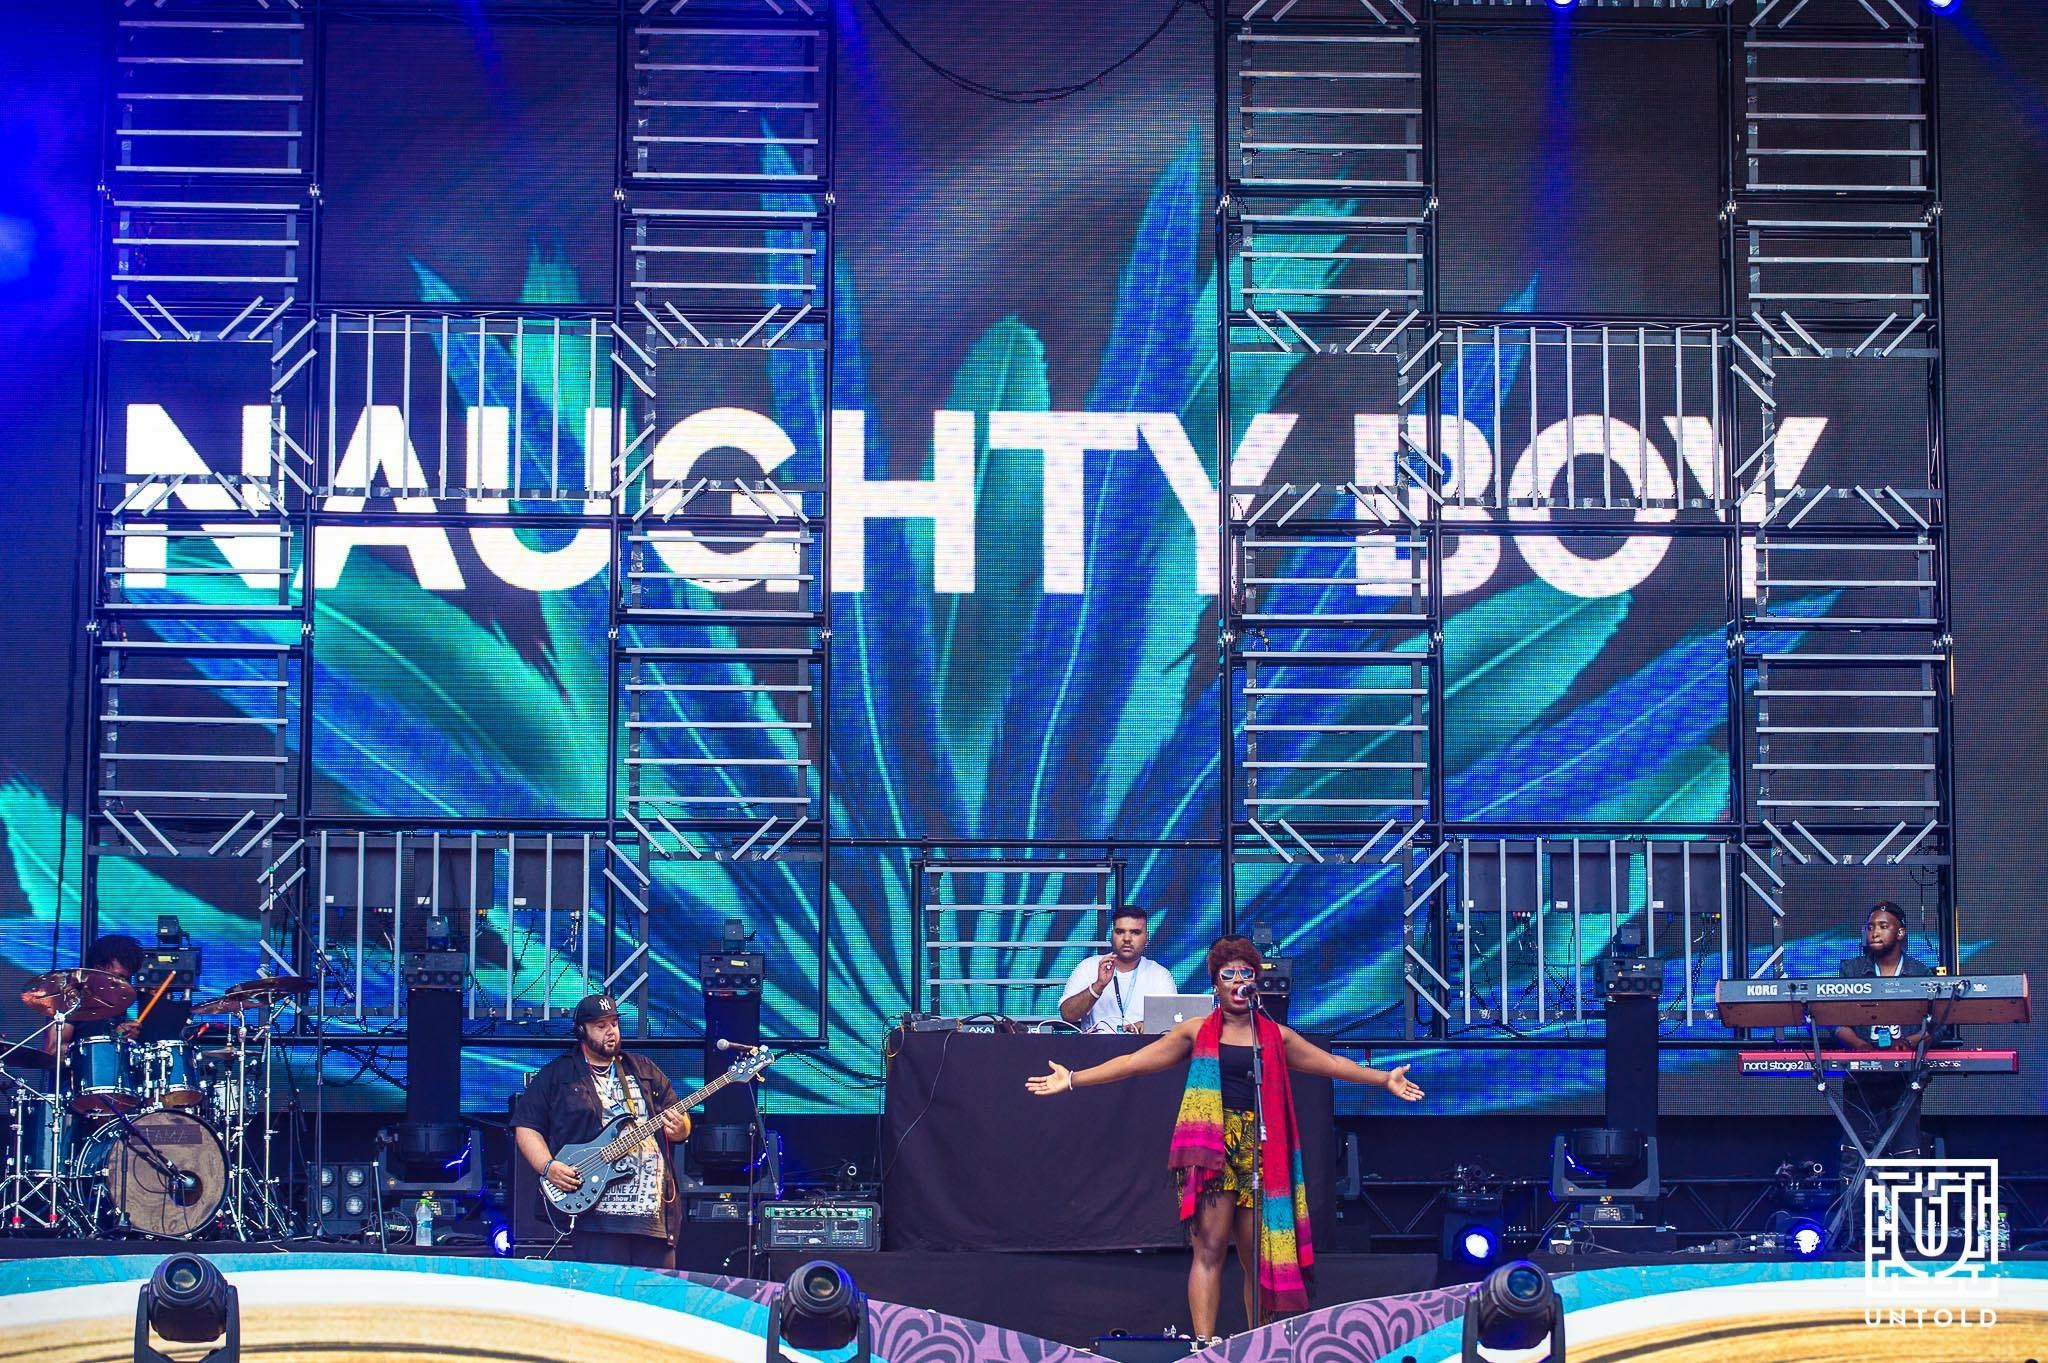 Naughty Boy Show, Romania 2016